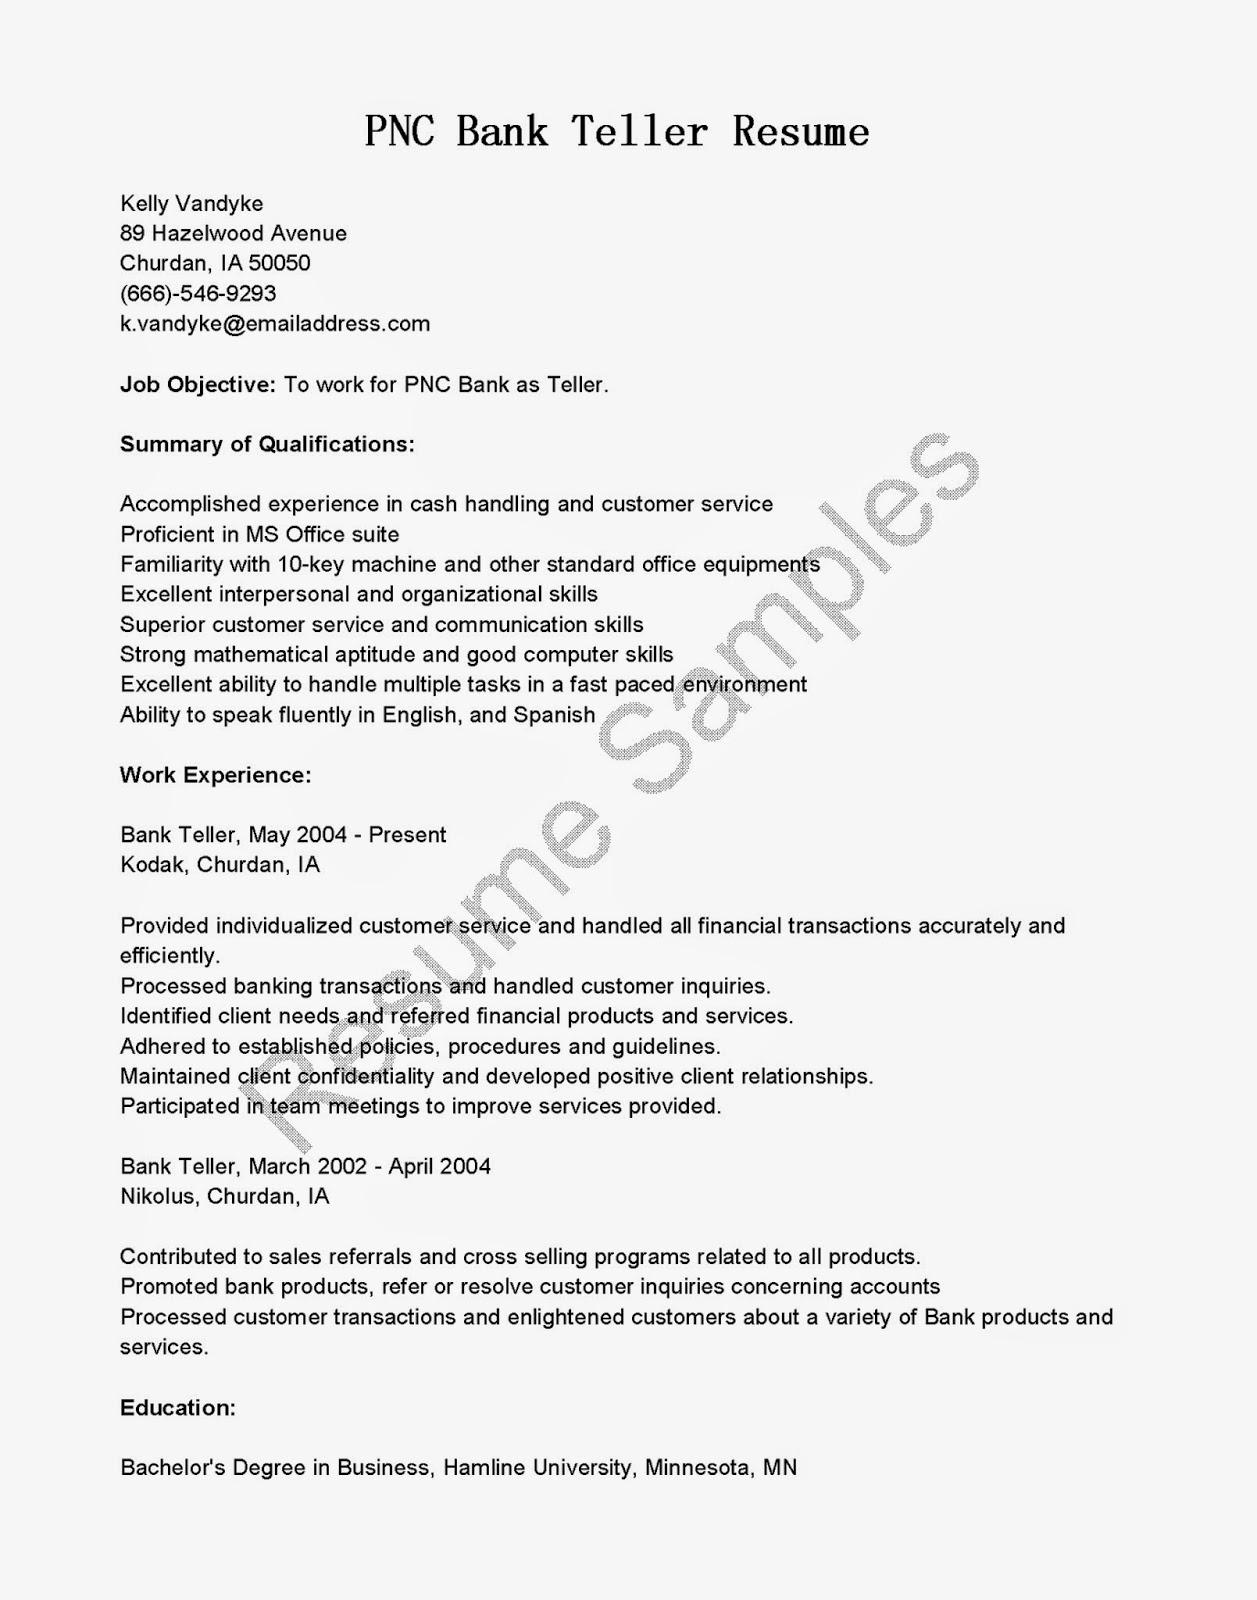 bank teller resume cover letters 97 sample bank teller resume with no experience cover bank teller resume cover letters - Cover Letter For Bank Teller Position